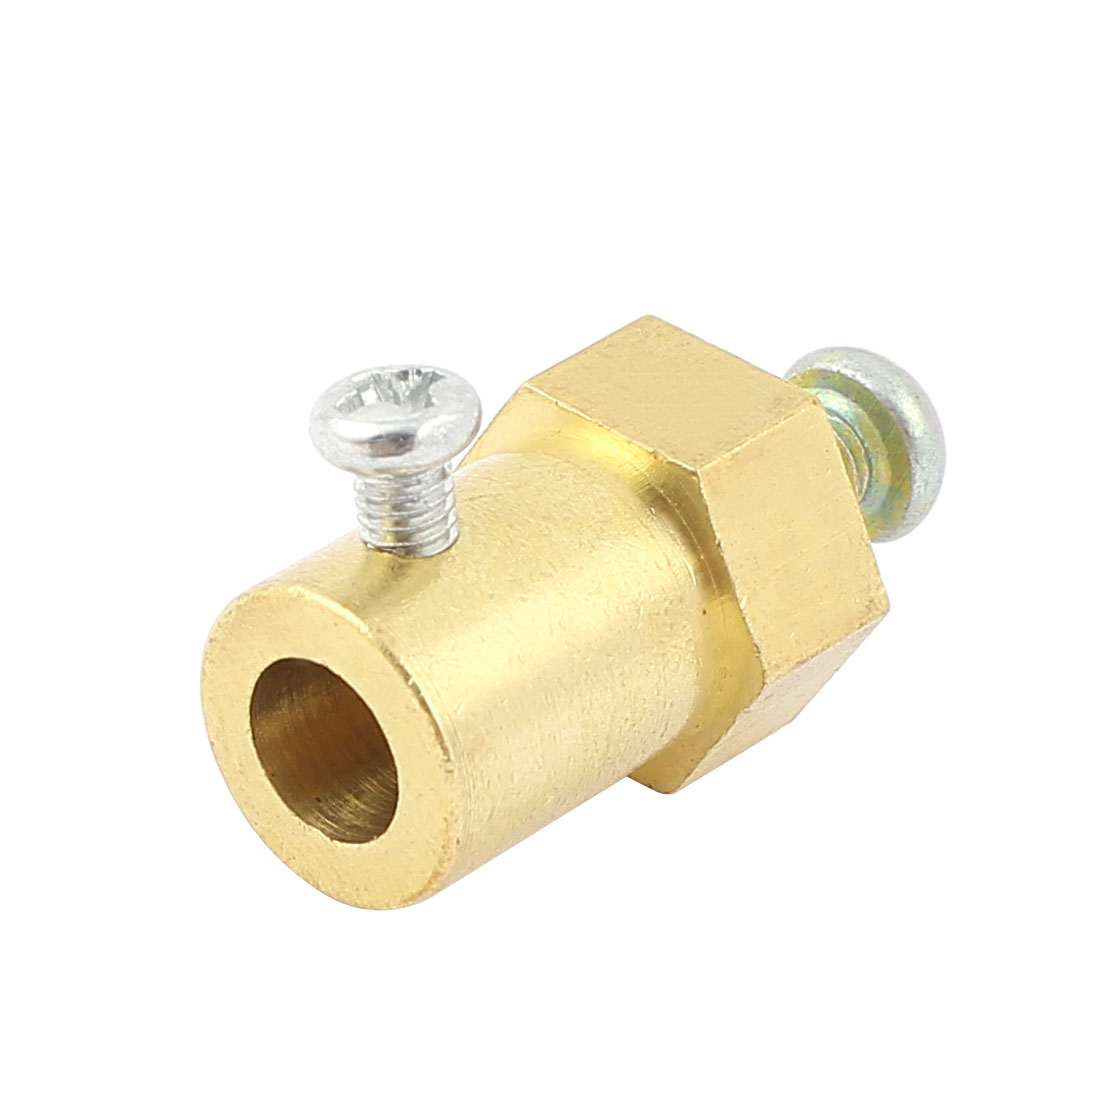 RC Model Wheels DC Gear Motor Reduction Brass Hex Coupling Coupler for 6mm Dia Shaft